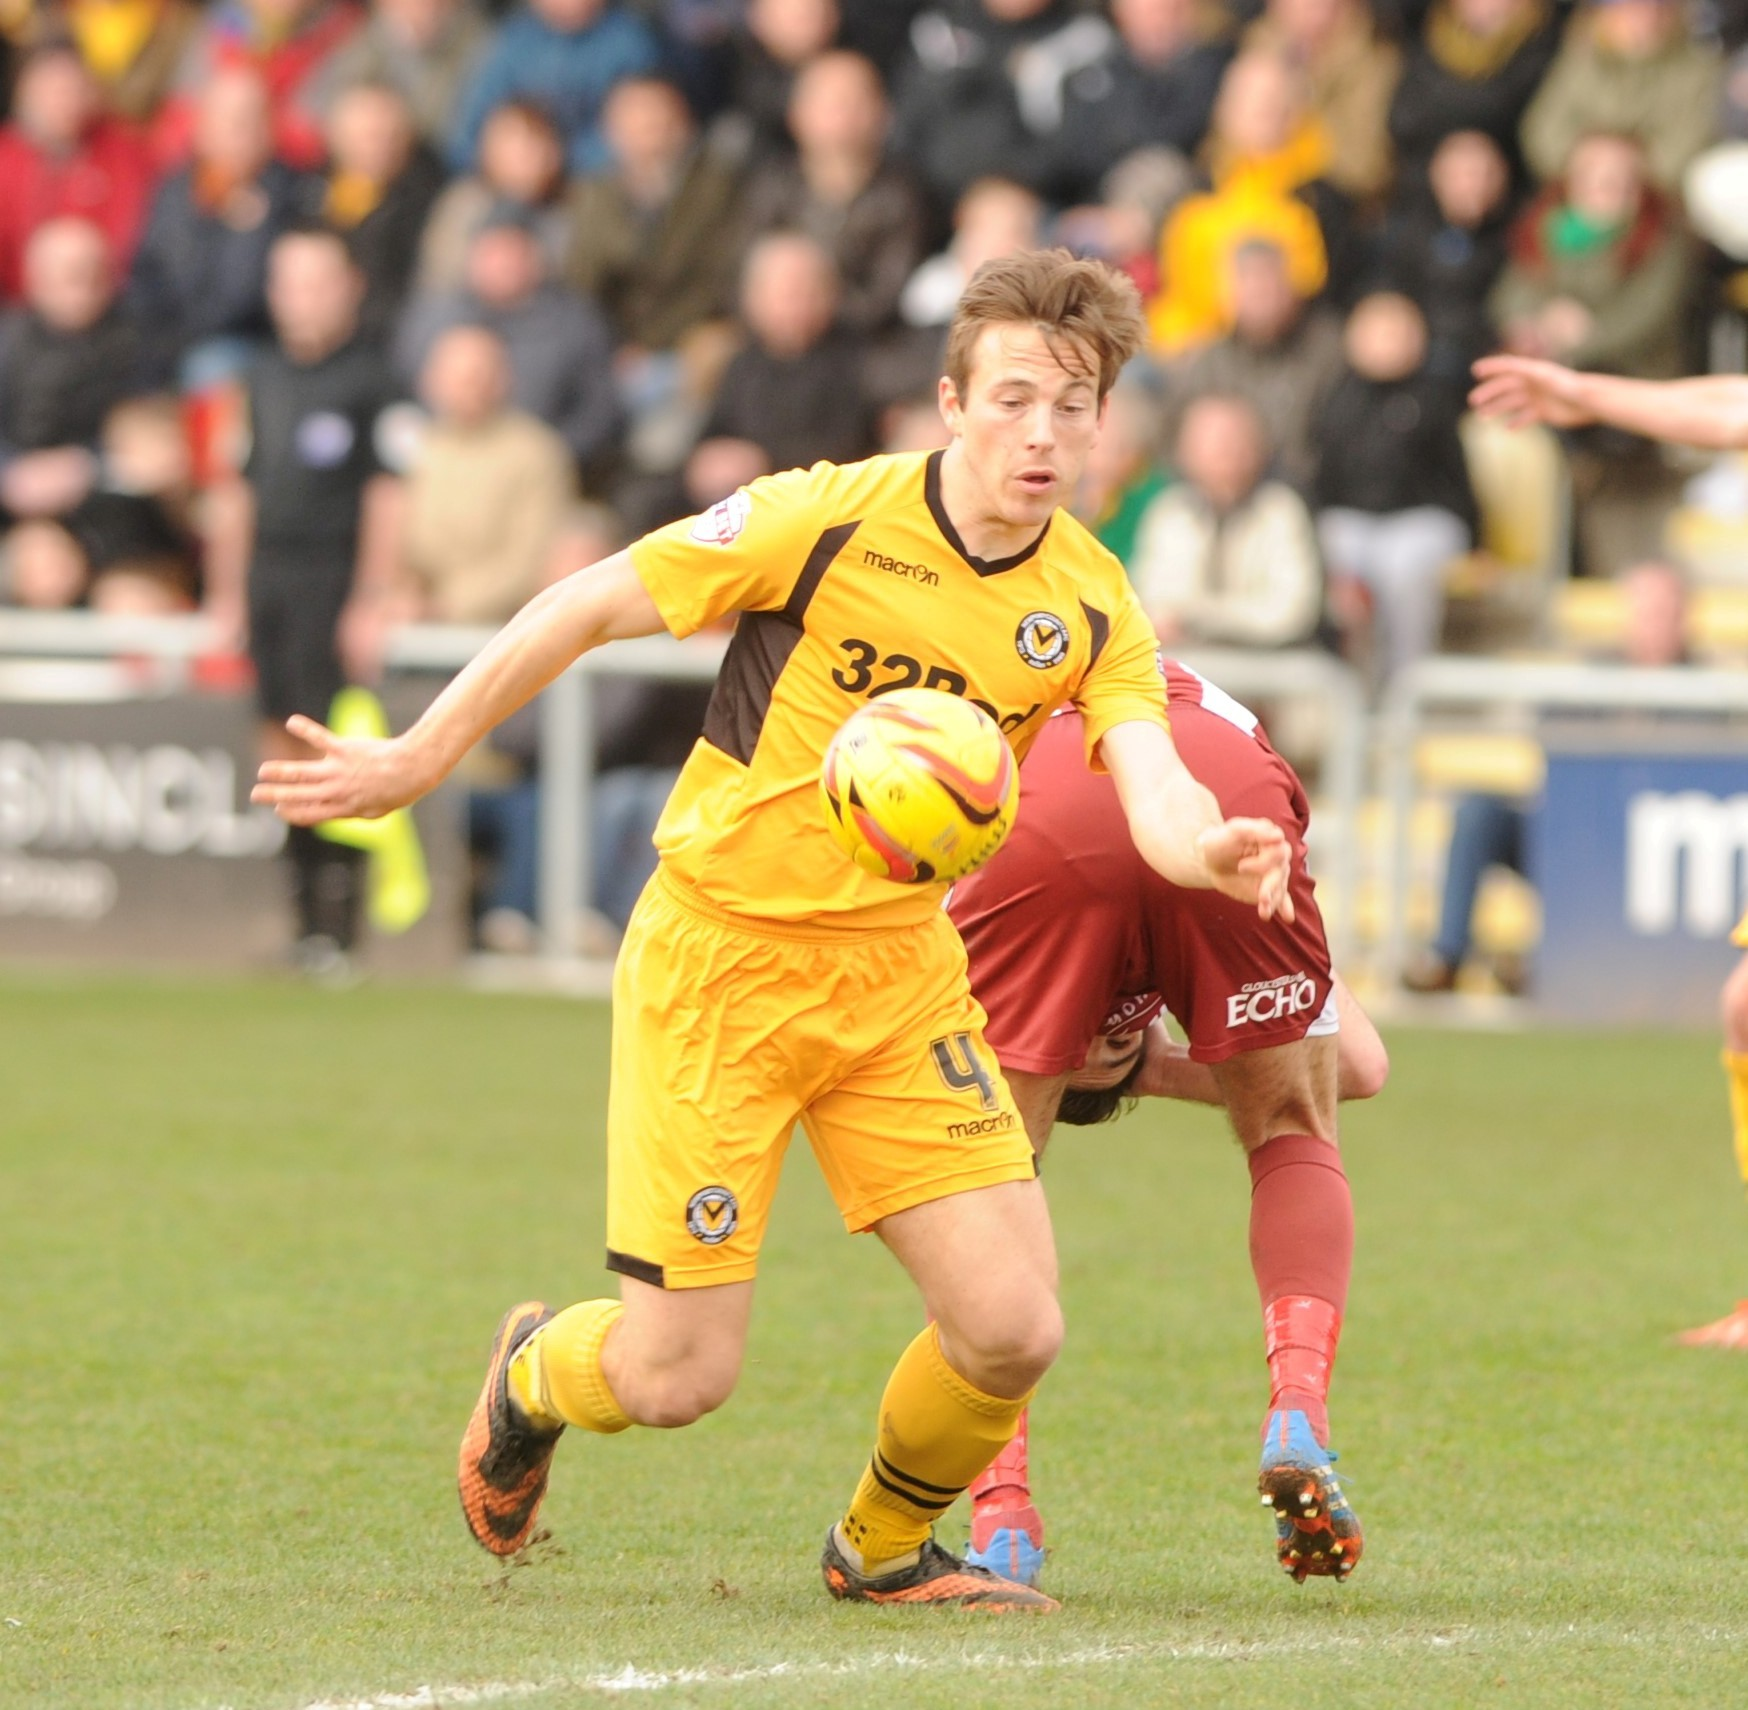 INJURY FEARS: County midfielder Max Porter